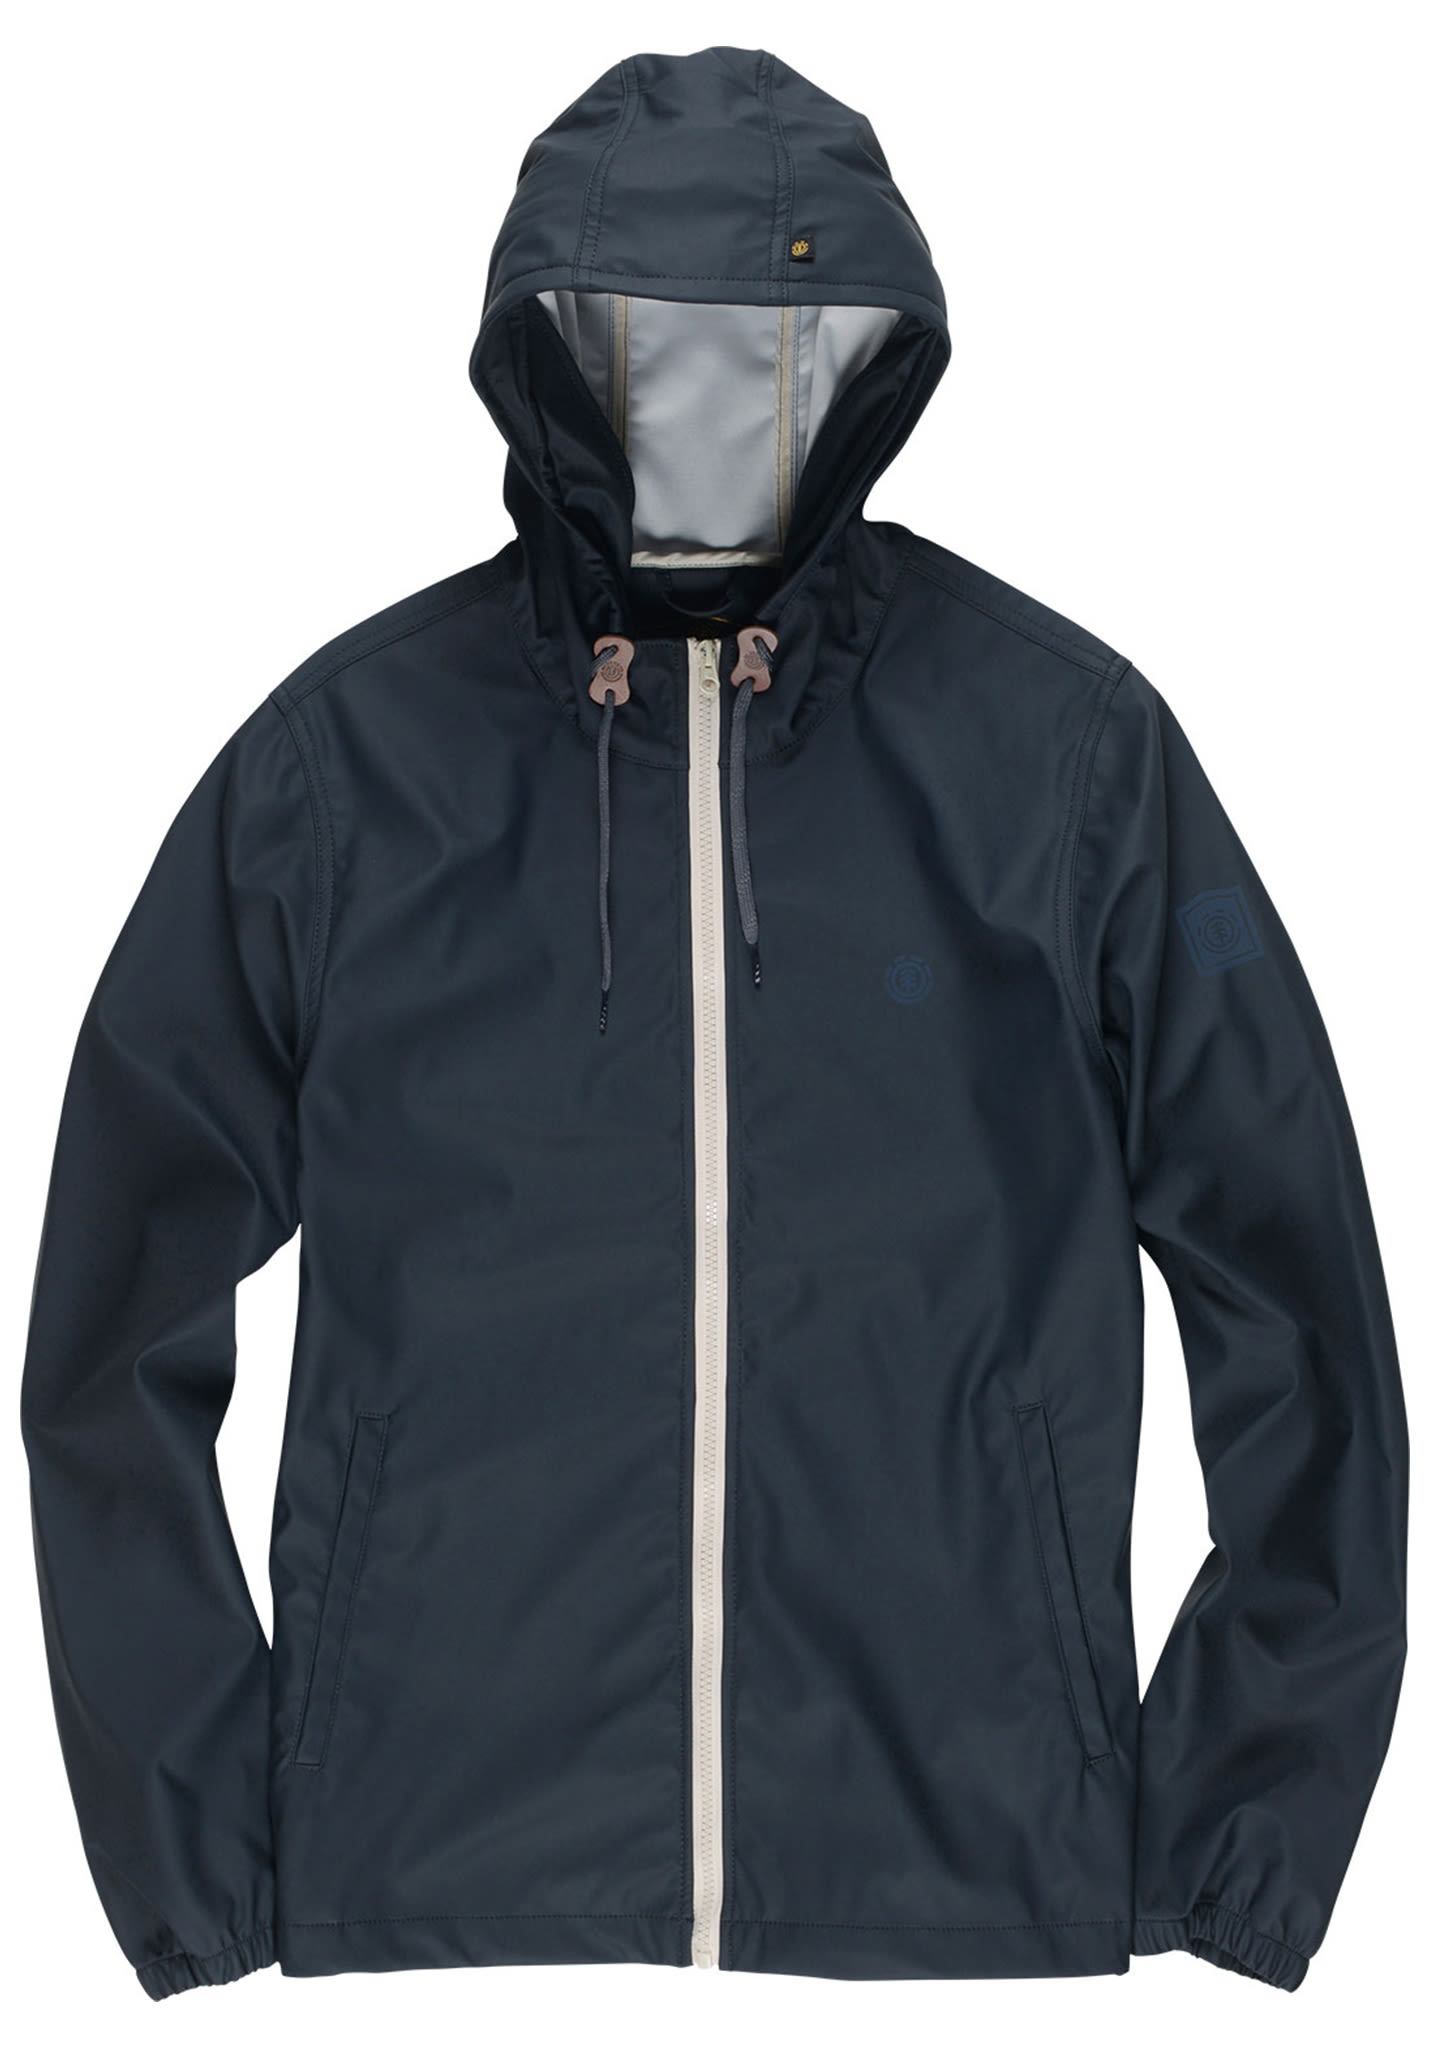 35b43835de00 Element Alder Rain - Jacke für Herren - Blau - Planet Sports